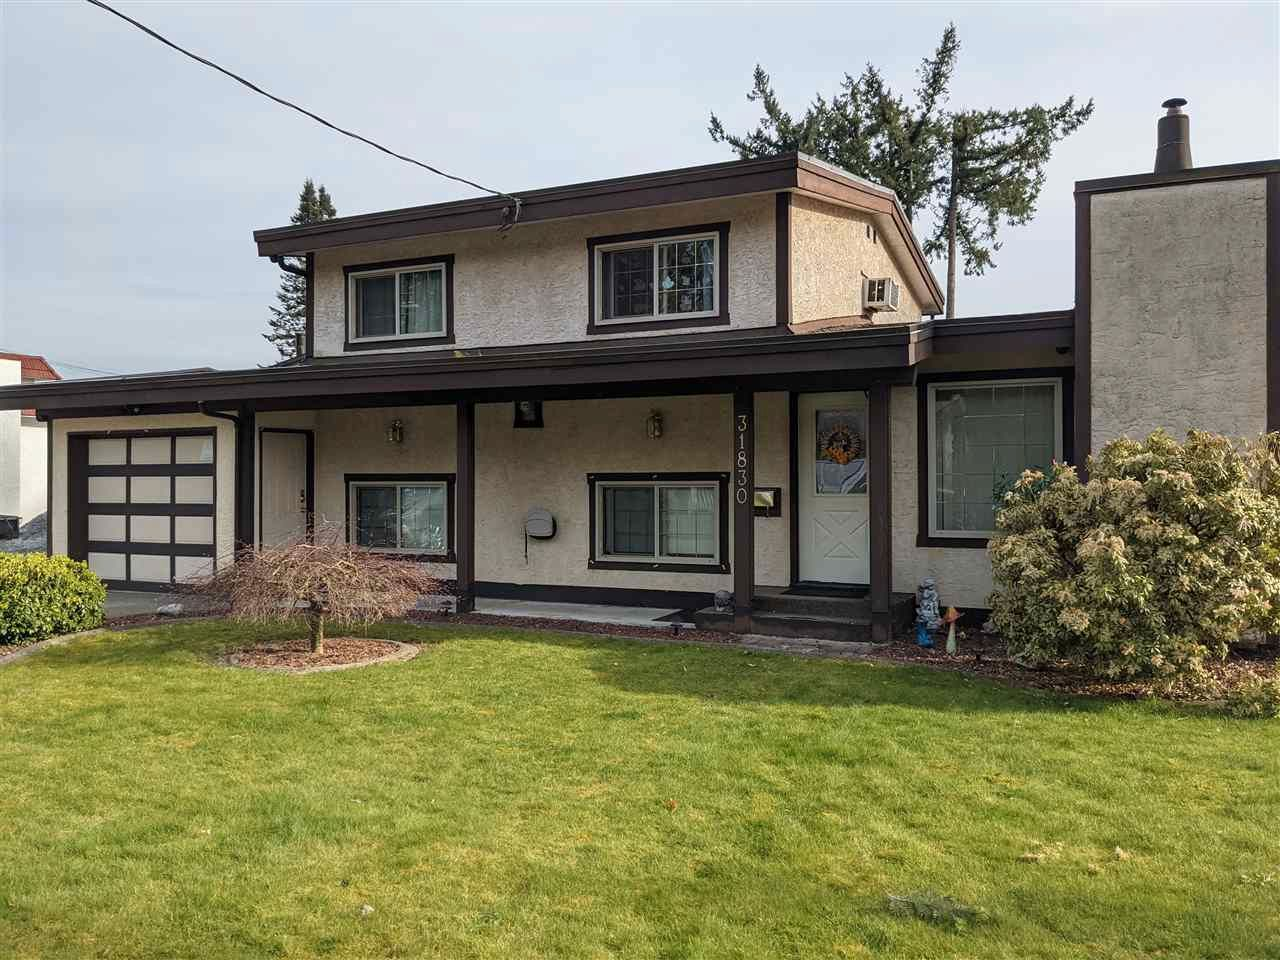 Main Photo: 31830 THRUSH Avenue in Mission: Mission BC House for sale : MLS®# R2564092